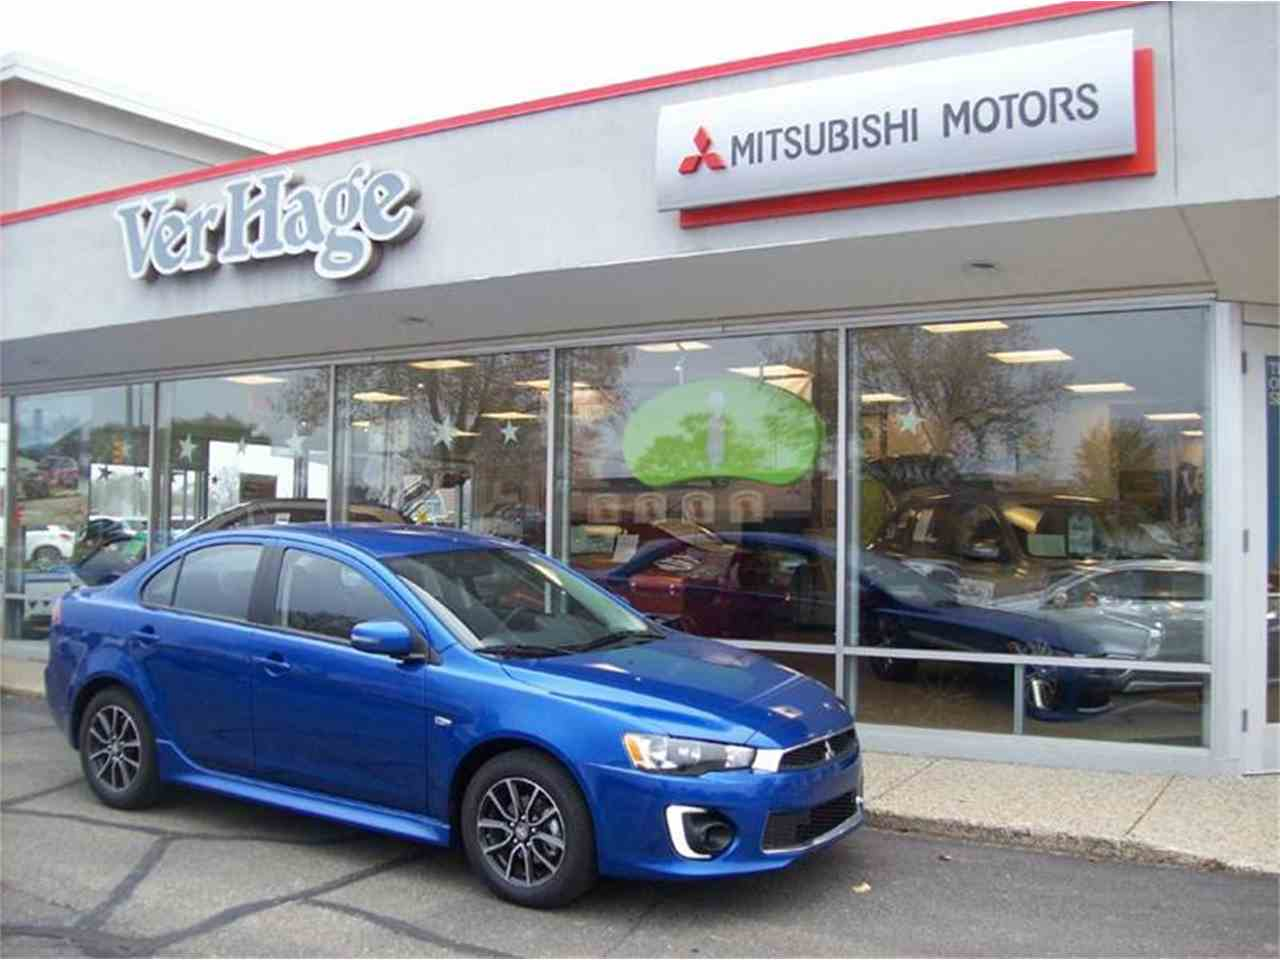 Large Picture of 2017 Mitsubishi Lancer located in Holland Michigan - $17,489.00 Offered by Verhage Mitsubishi - JSPQ